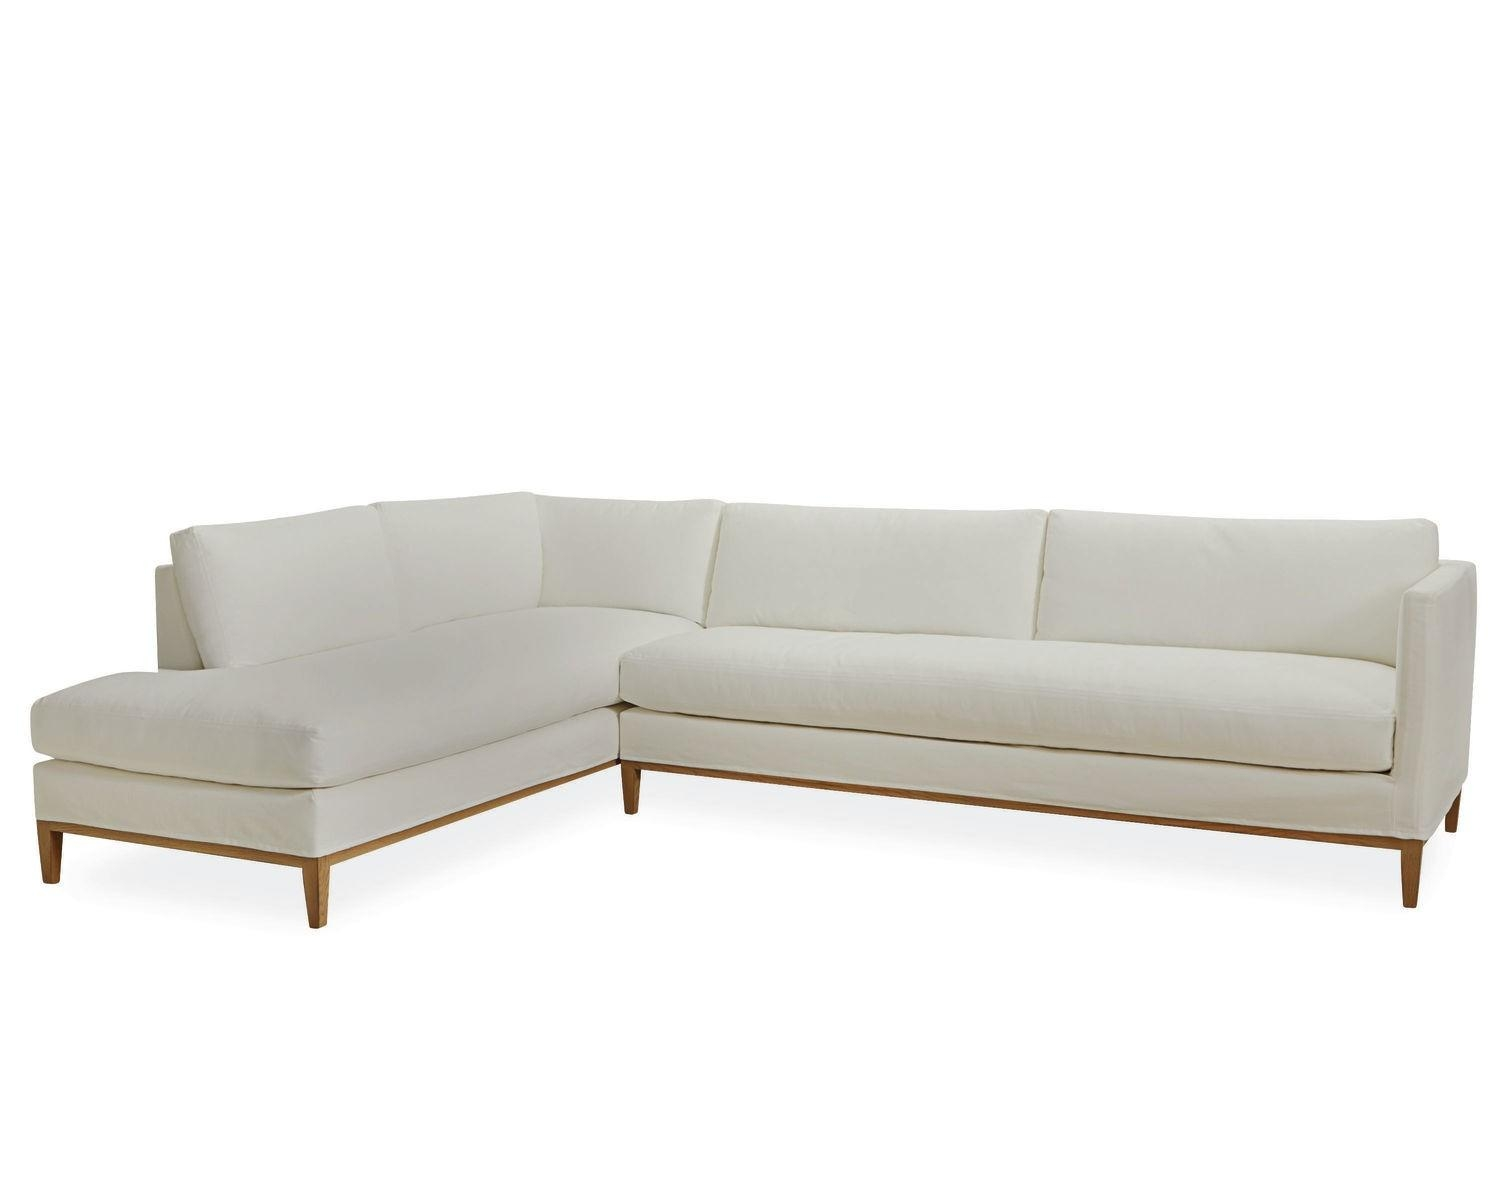 20 Collection Of Lee Industries Sectional Sofa